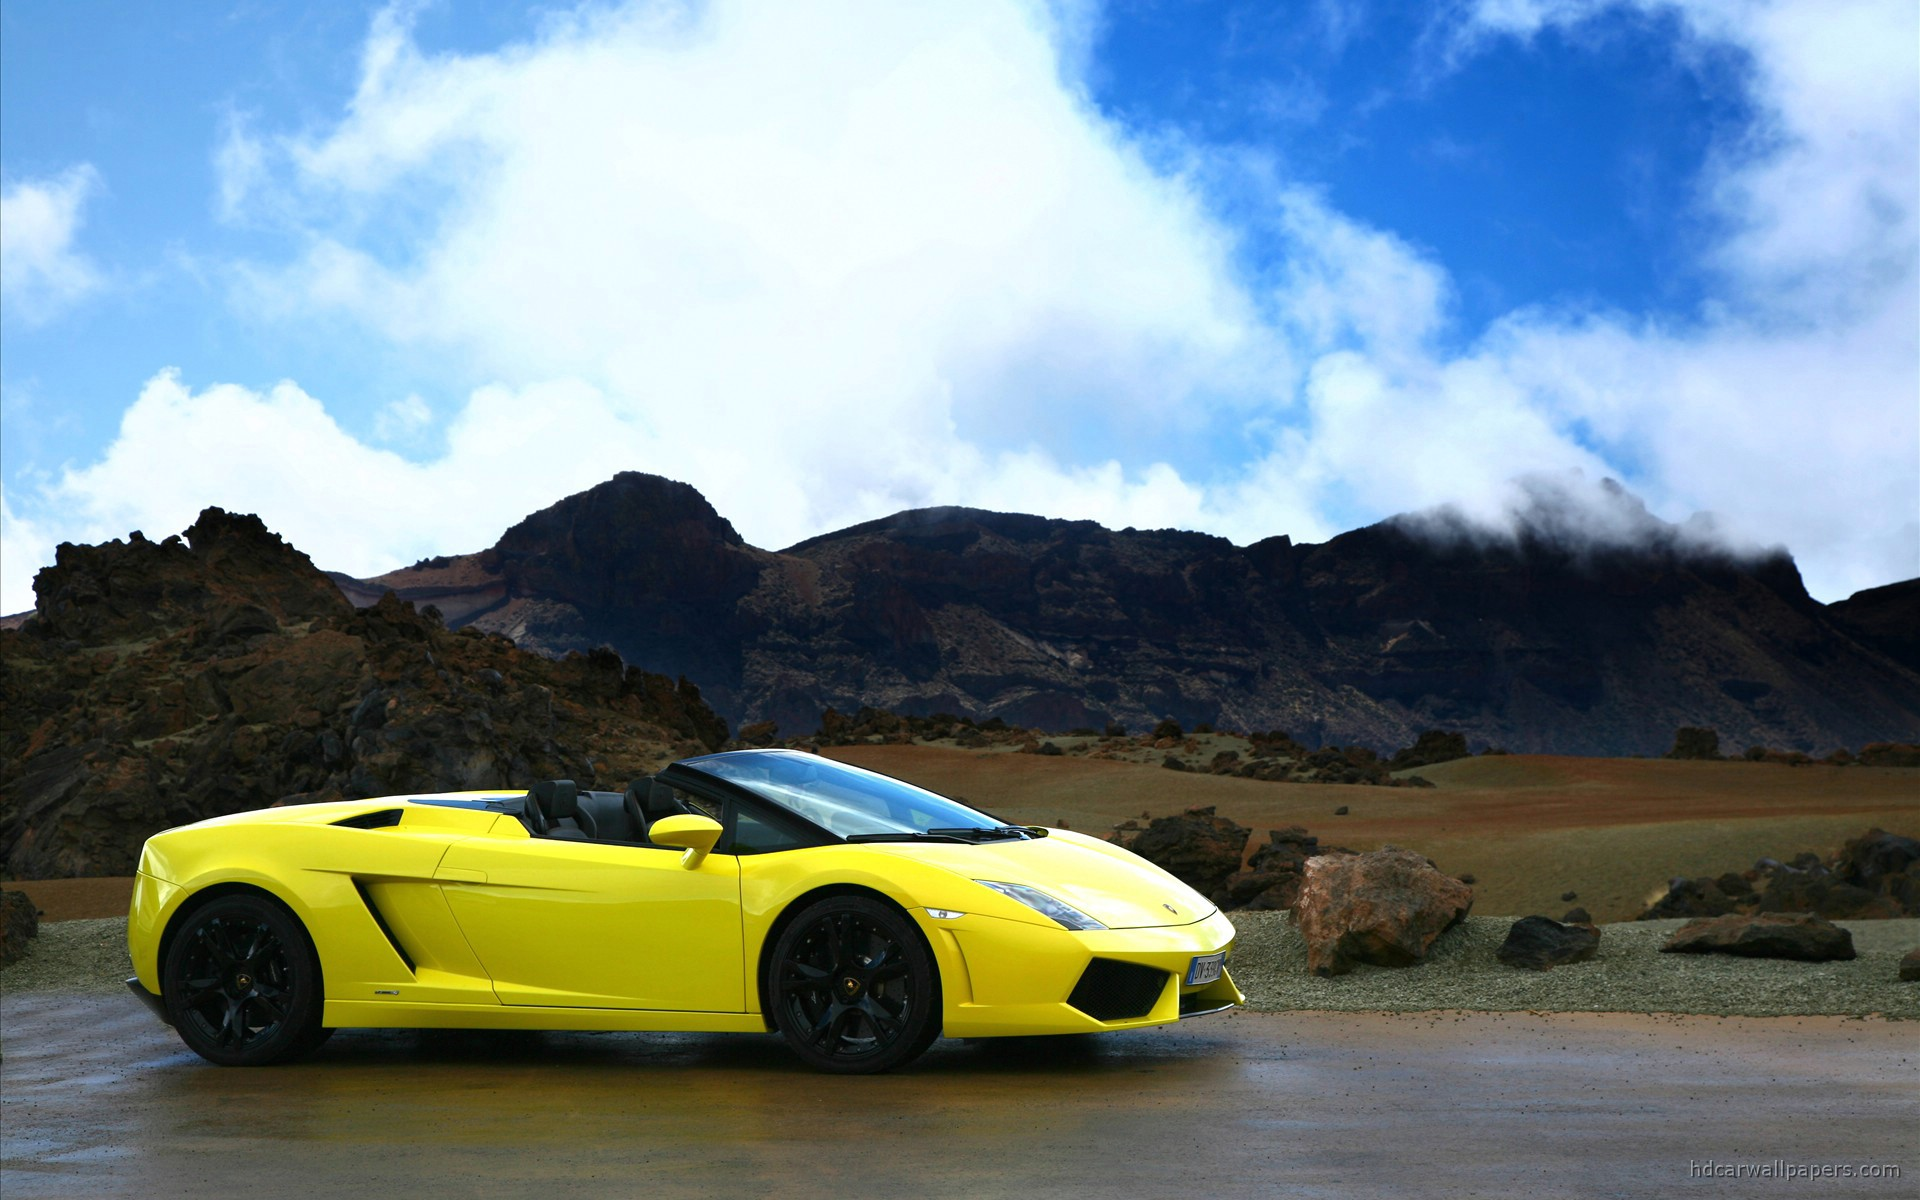 Lamborghini Gallardo Wallpaper Download 1412 Wallpaper Cool 1920x1200